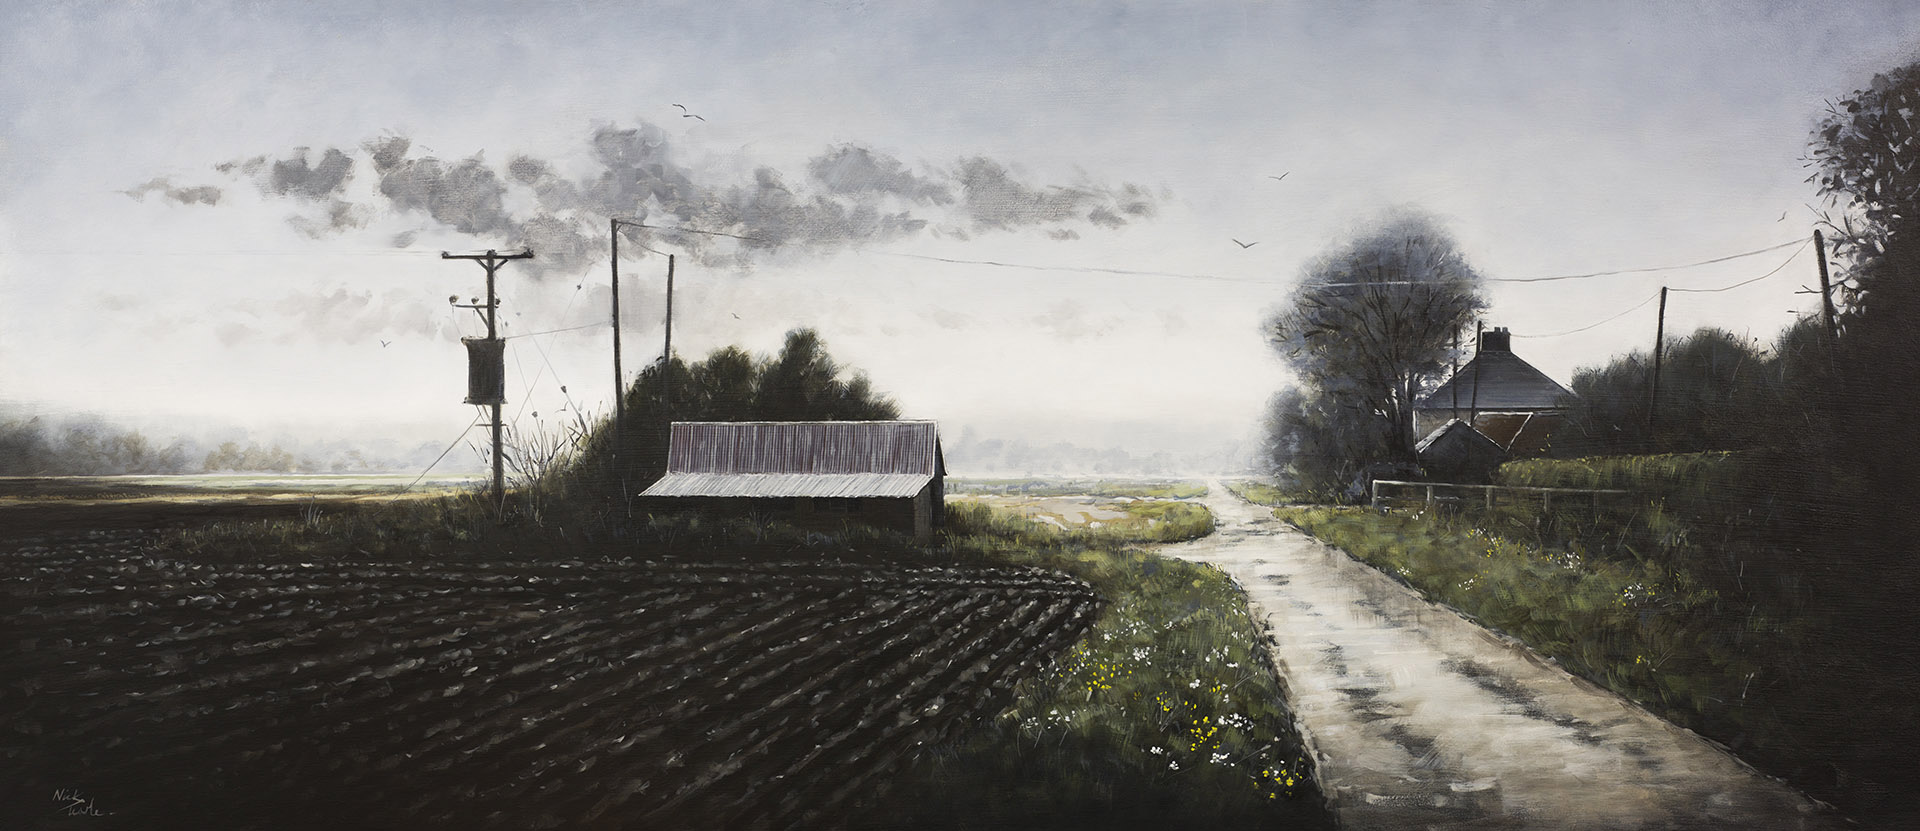 Rain on Morton Fen - Nick Tearle Fenland Artist